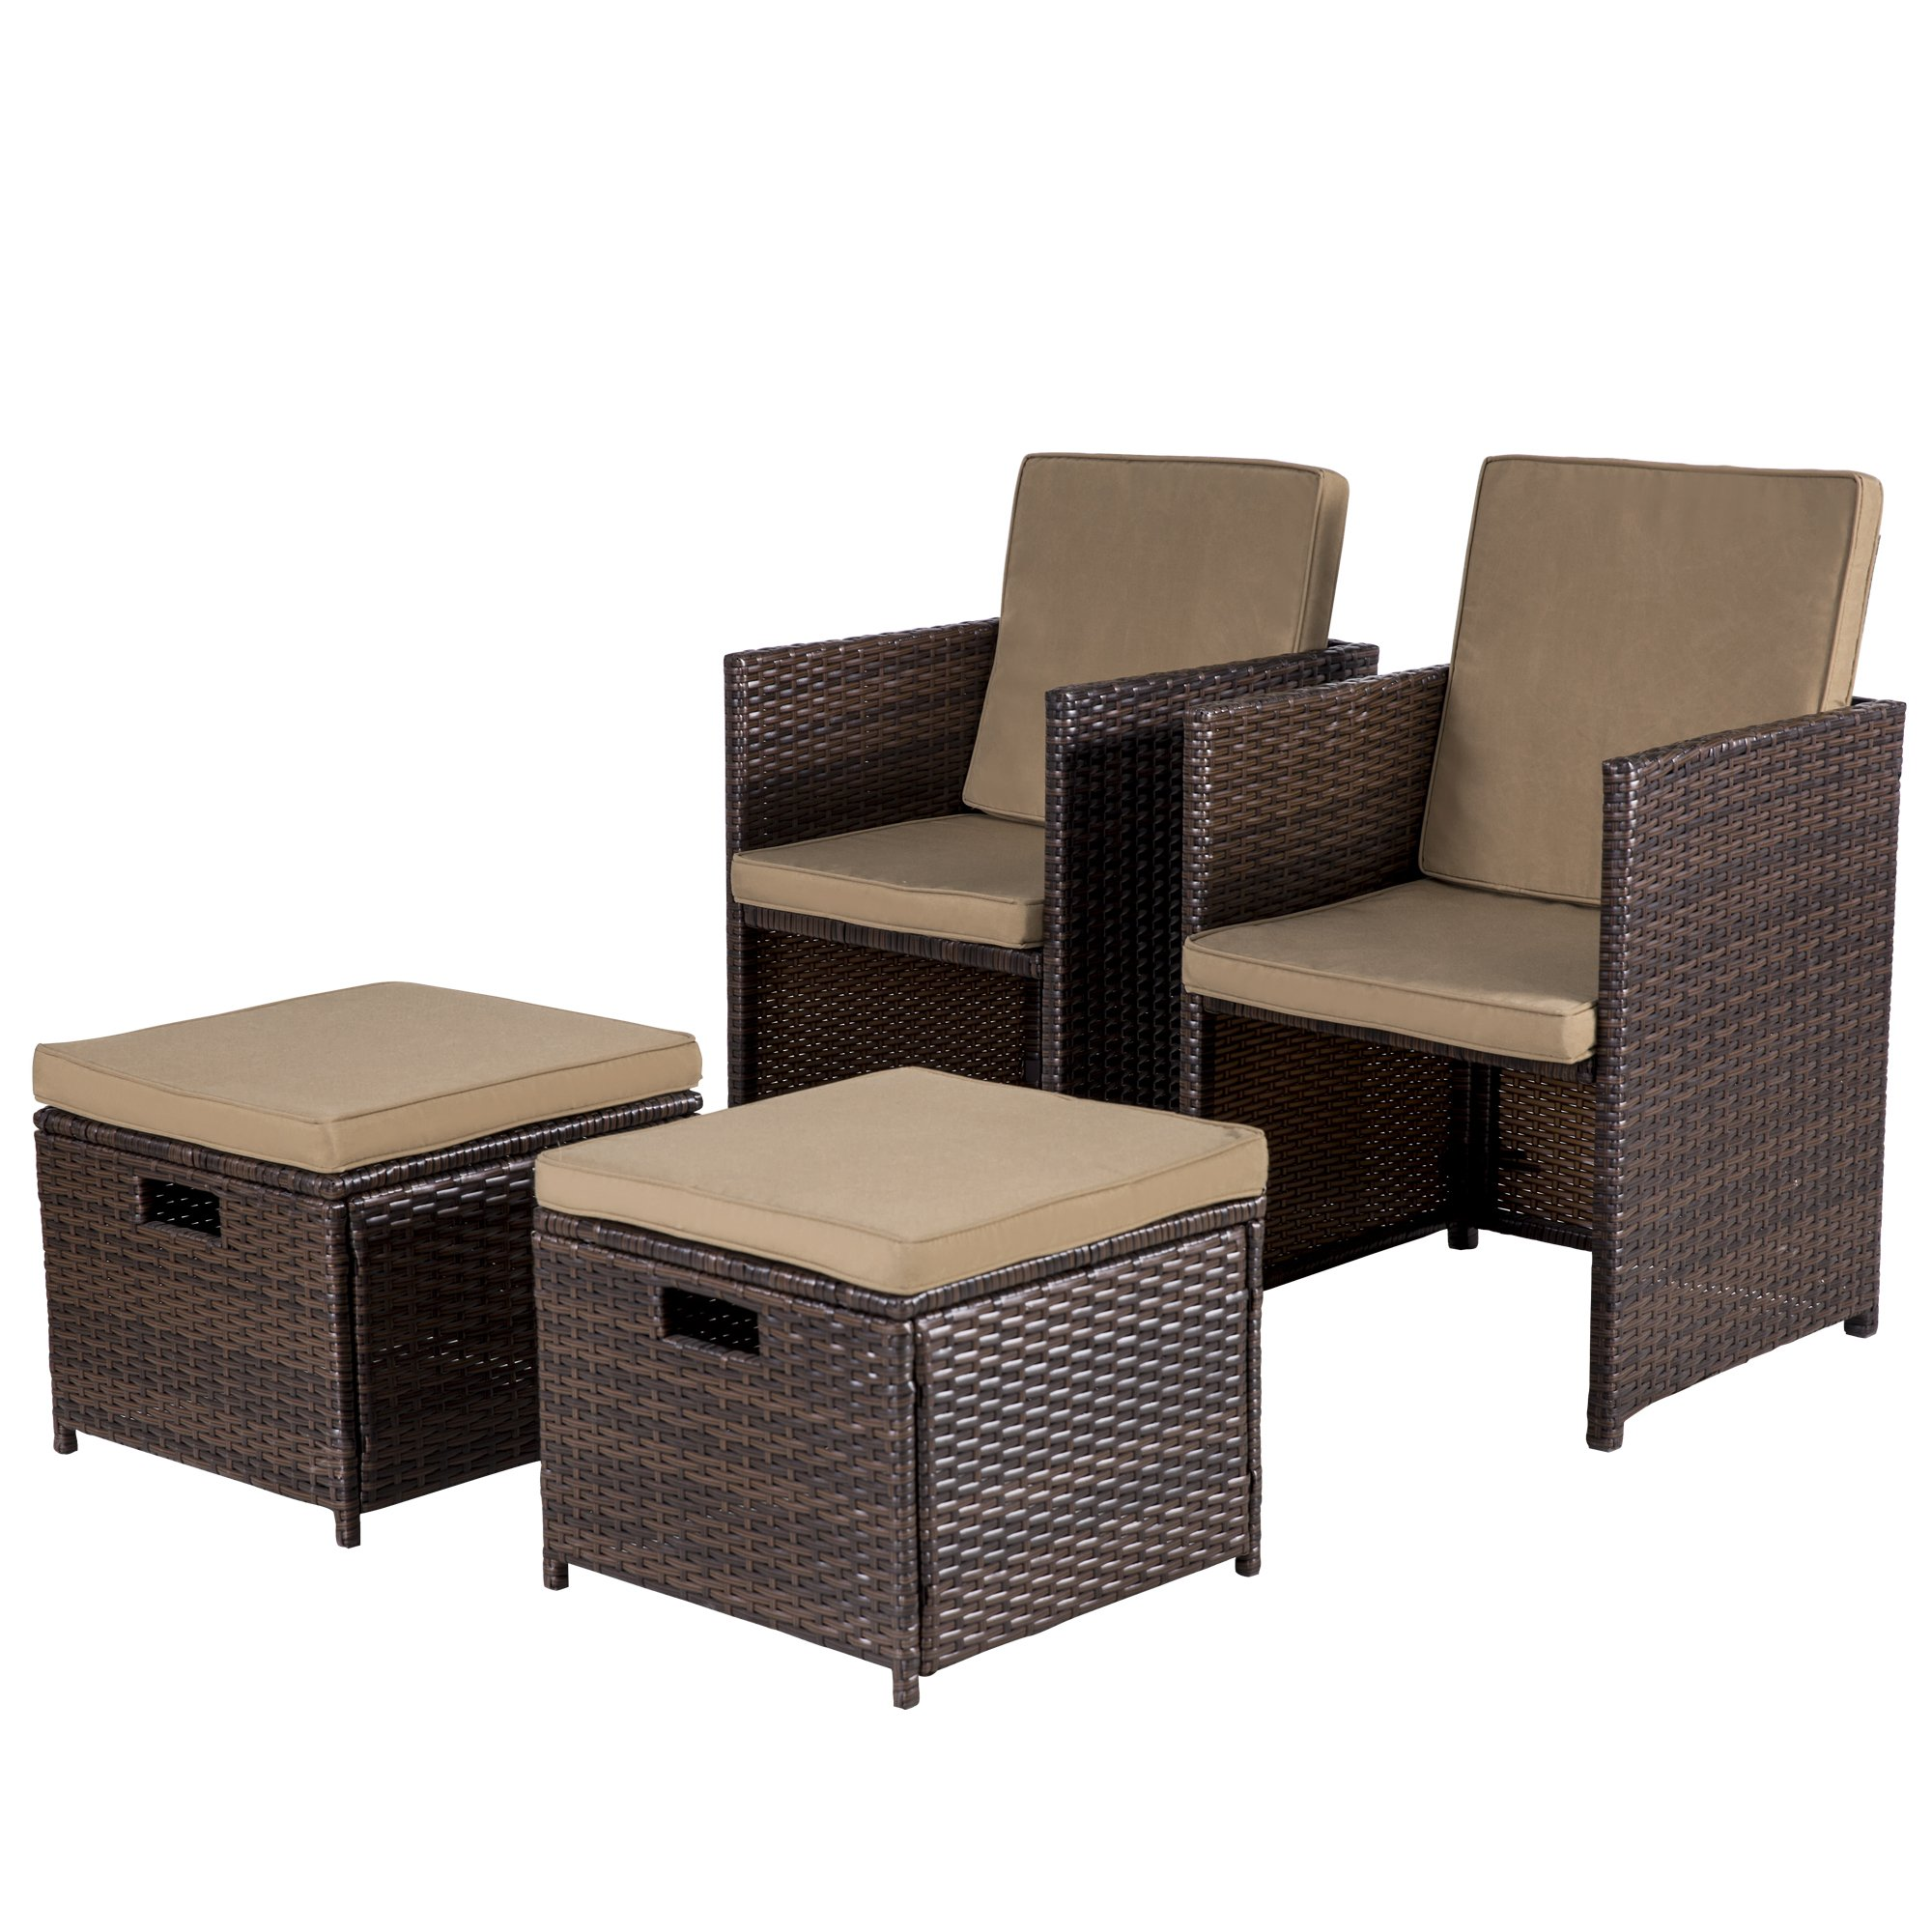 Cloud Mountain Outdoor 5 Piece Rattan Wicker Furniture Bar Set Dining Set Cushioned Patio Furniture Set Space Saving - 1 Patio Dining Table & 4 Conversation Bistro Set, Brown by Cloud Mountain (Image #7)